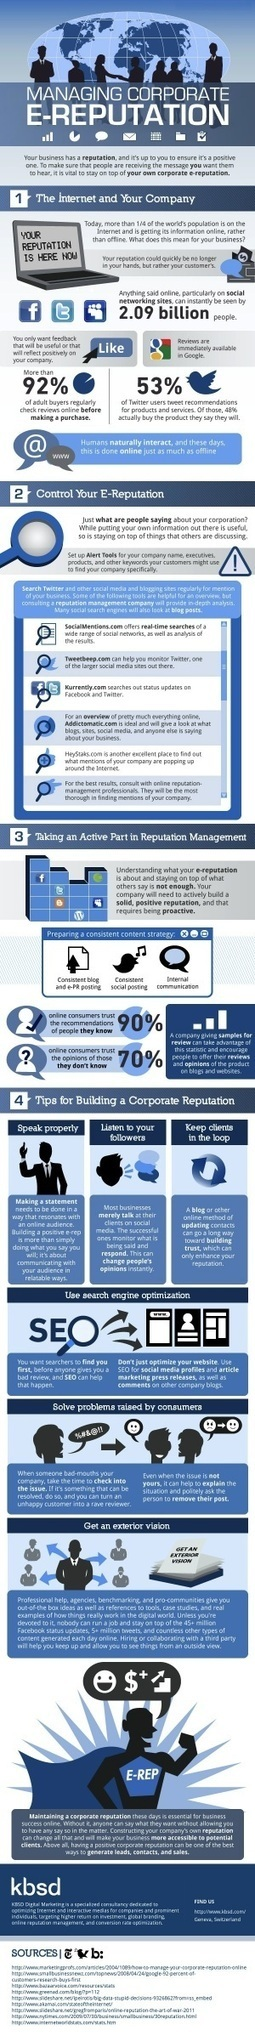 How to manage your company's online reputation (infographic) | Social Media Italy | Scoop.it